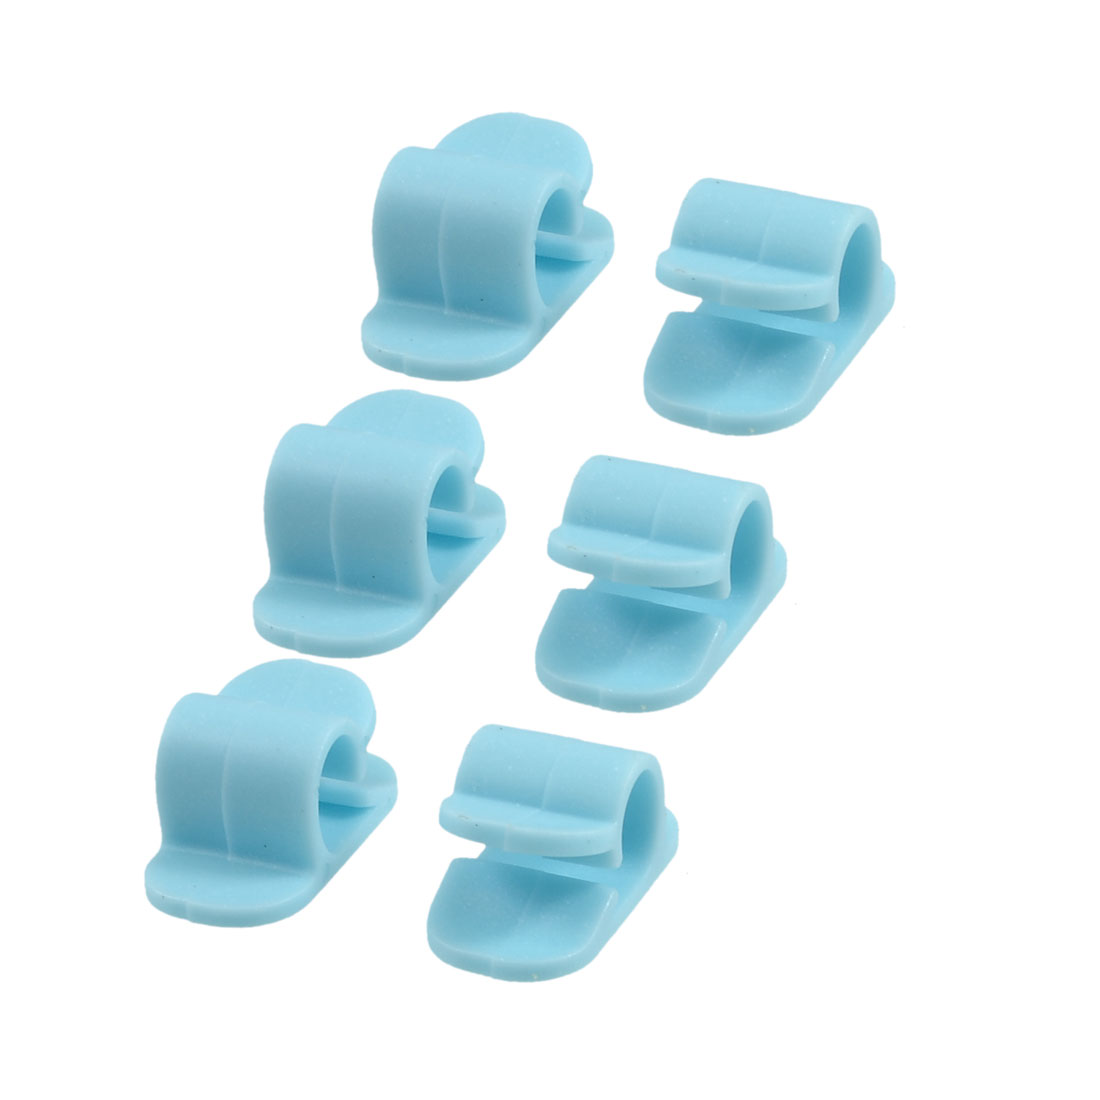 6 Pcs Blue Plastic Cord Wire Cable Clips Organizers